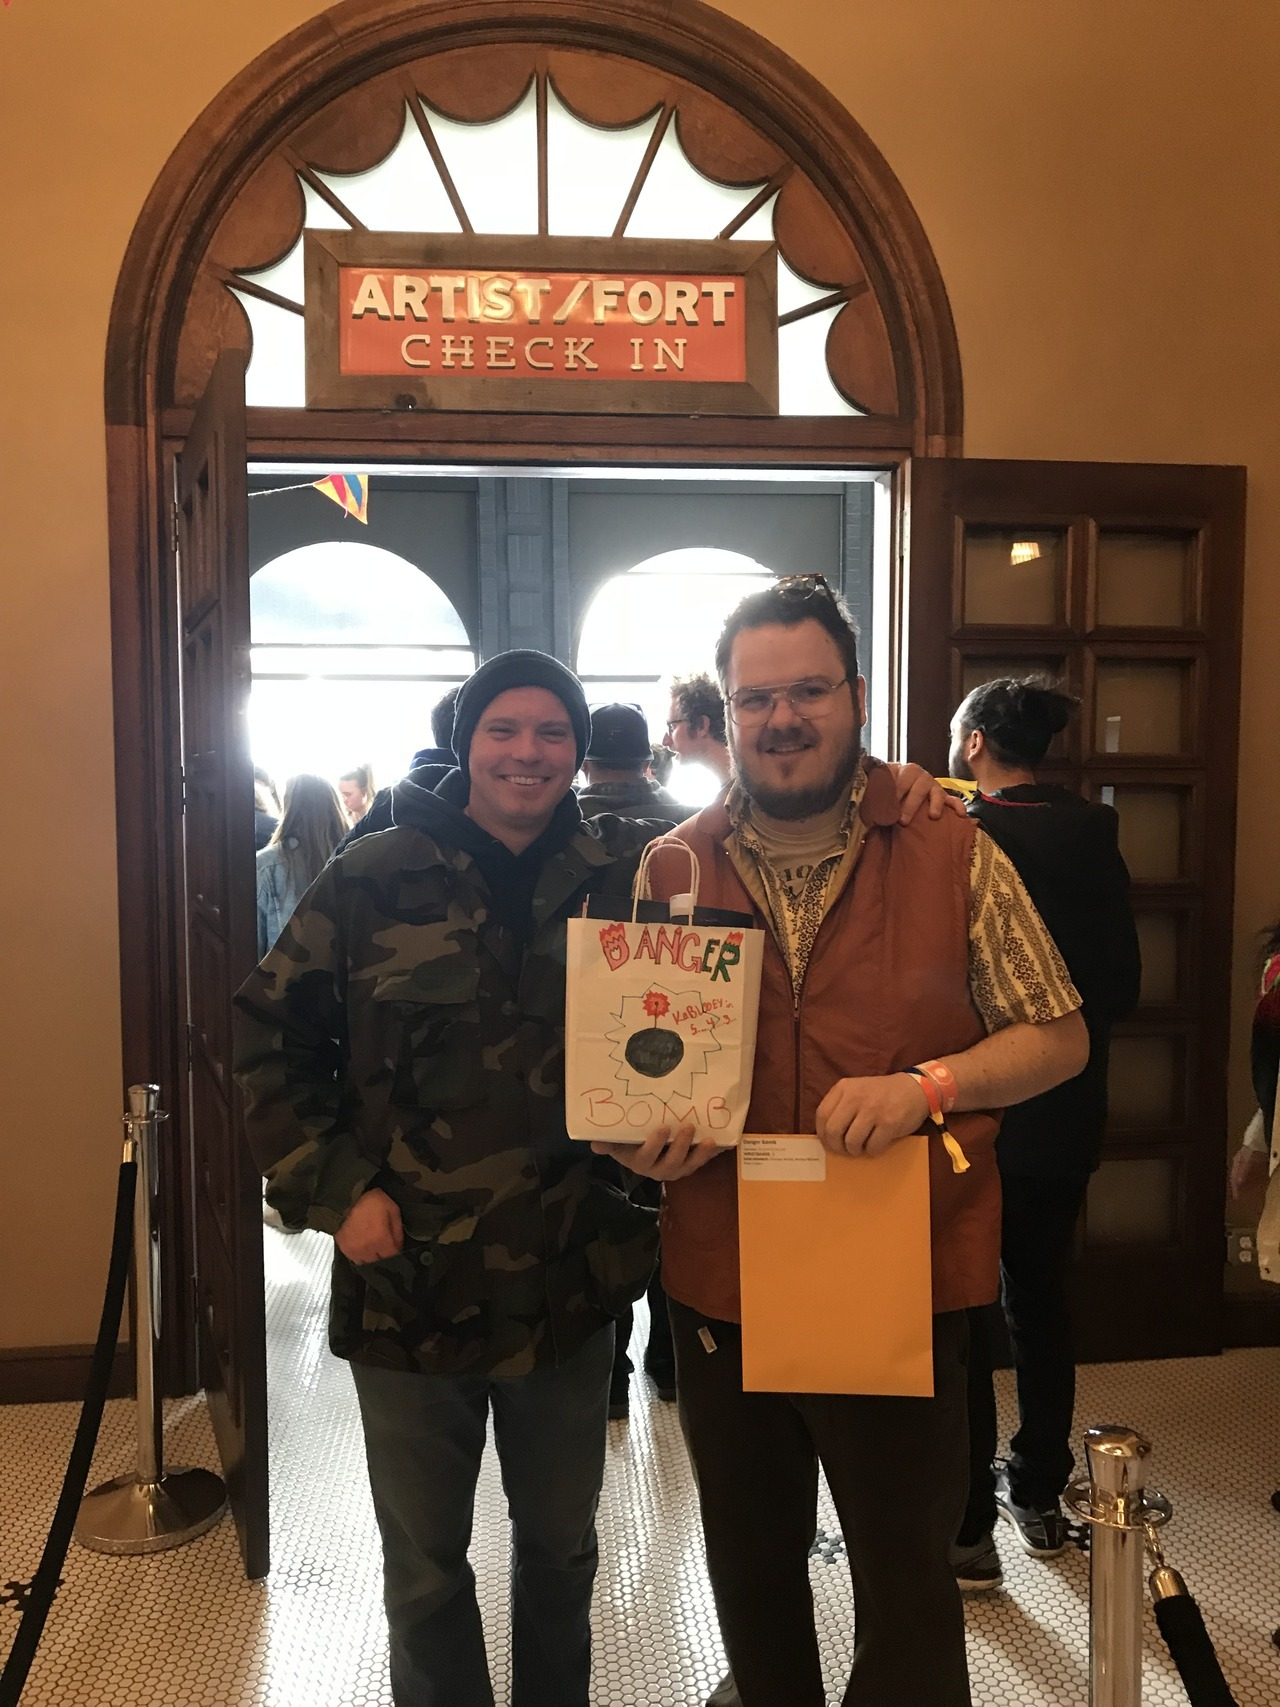 """seethrushears:  Danger Bomb (DJ Winkle of KRBXs """"Bangers and Mashups"""") picking up their swag bag at Artist Check-in. The fun is just beginning. NMA"""